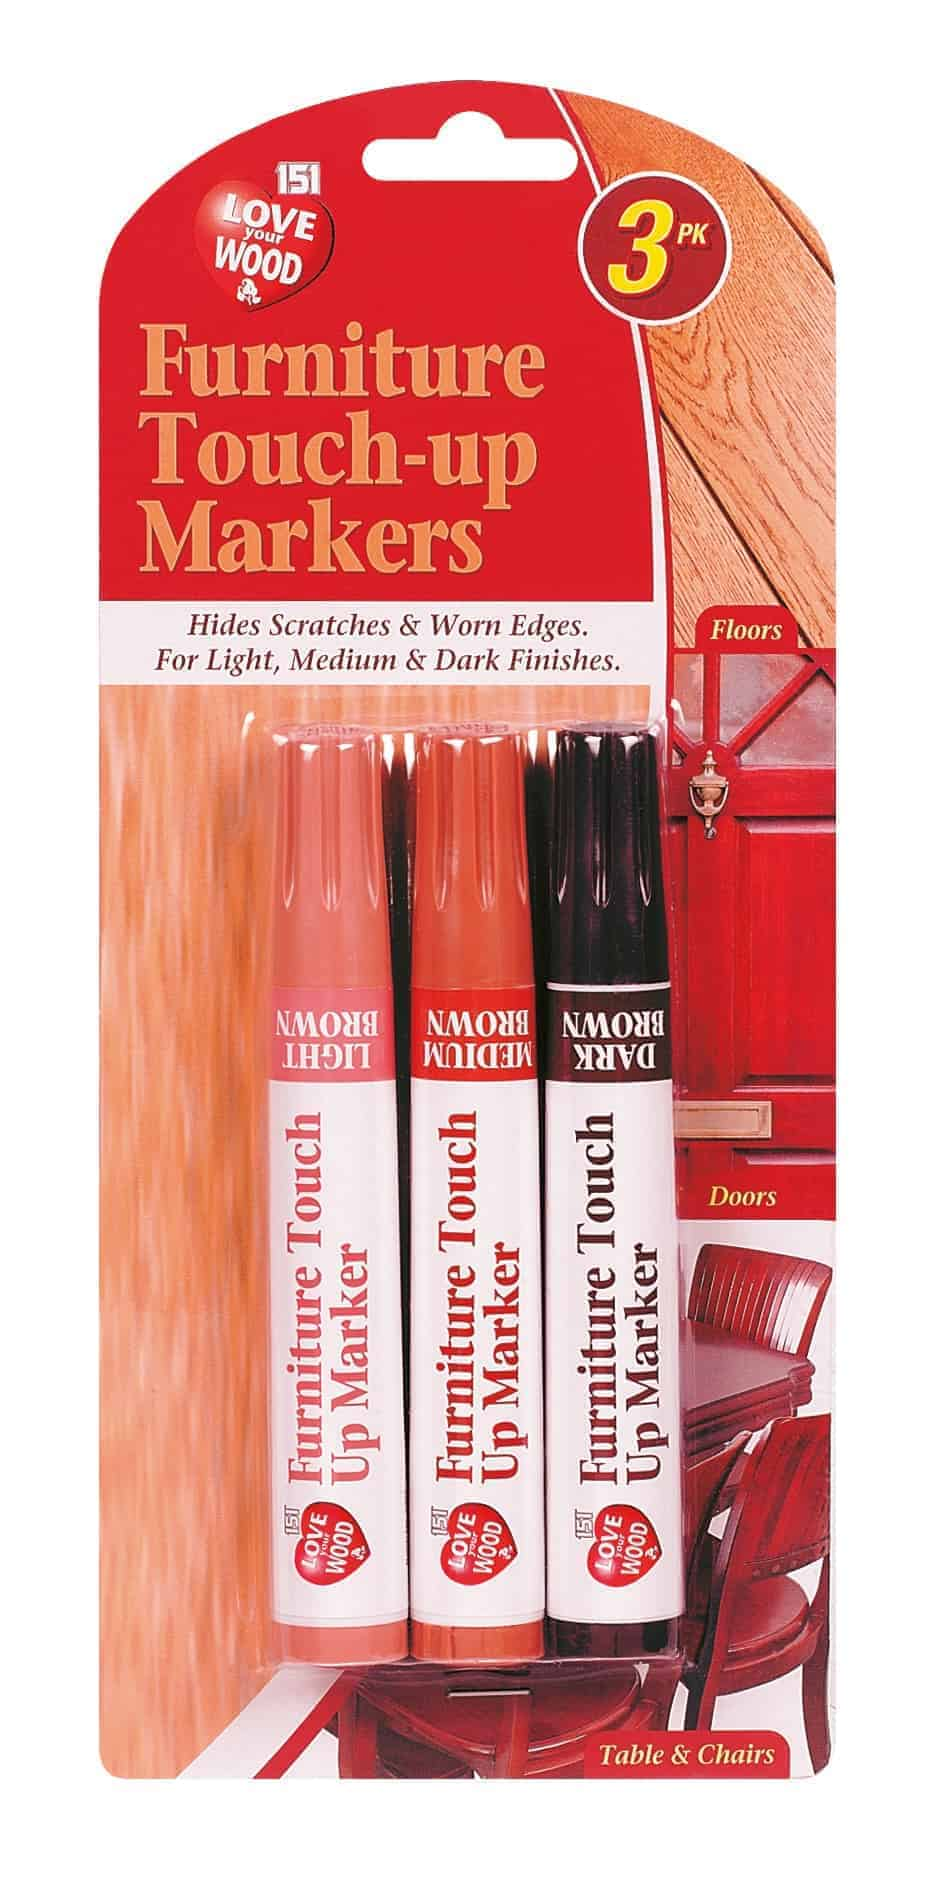 151 Products Furniture Touch-Up Pens